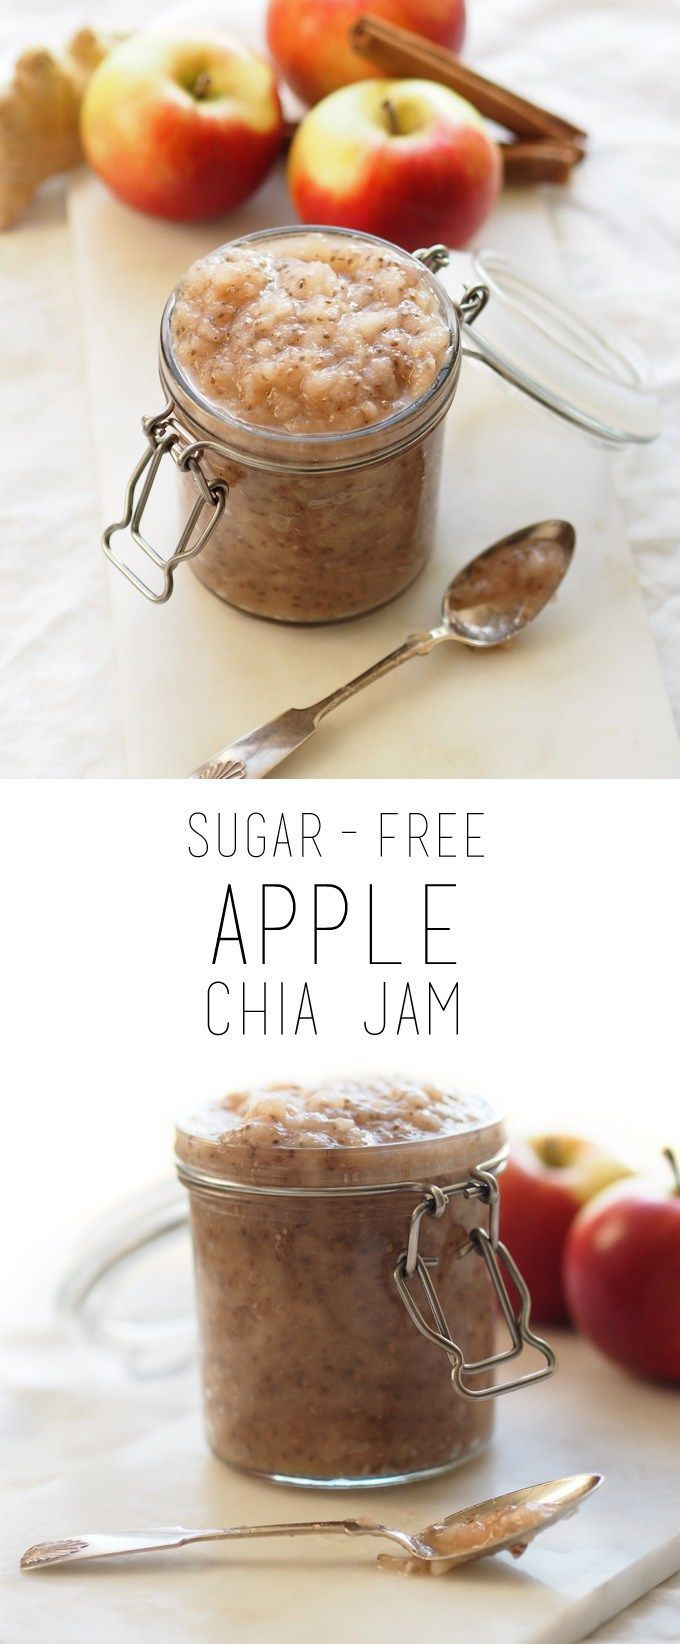 Sugar-free apple chia jam that is easy to prepare, healthy and delicious